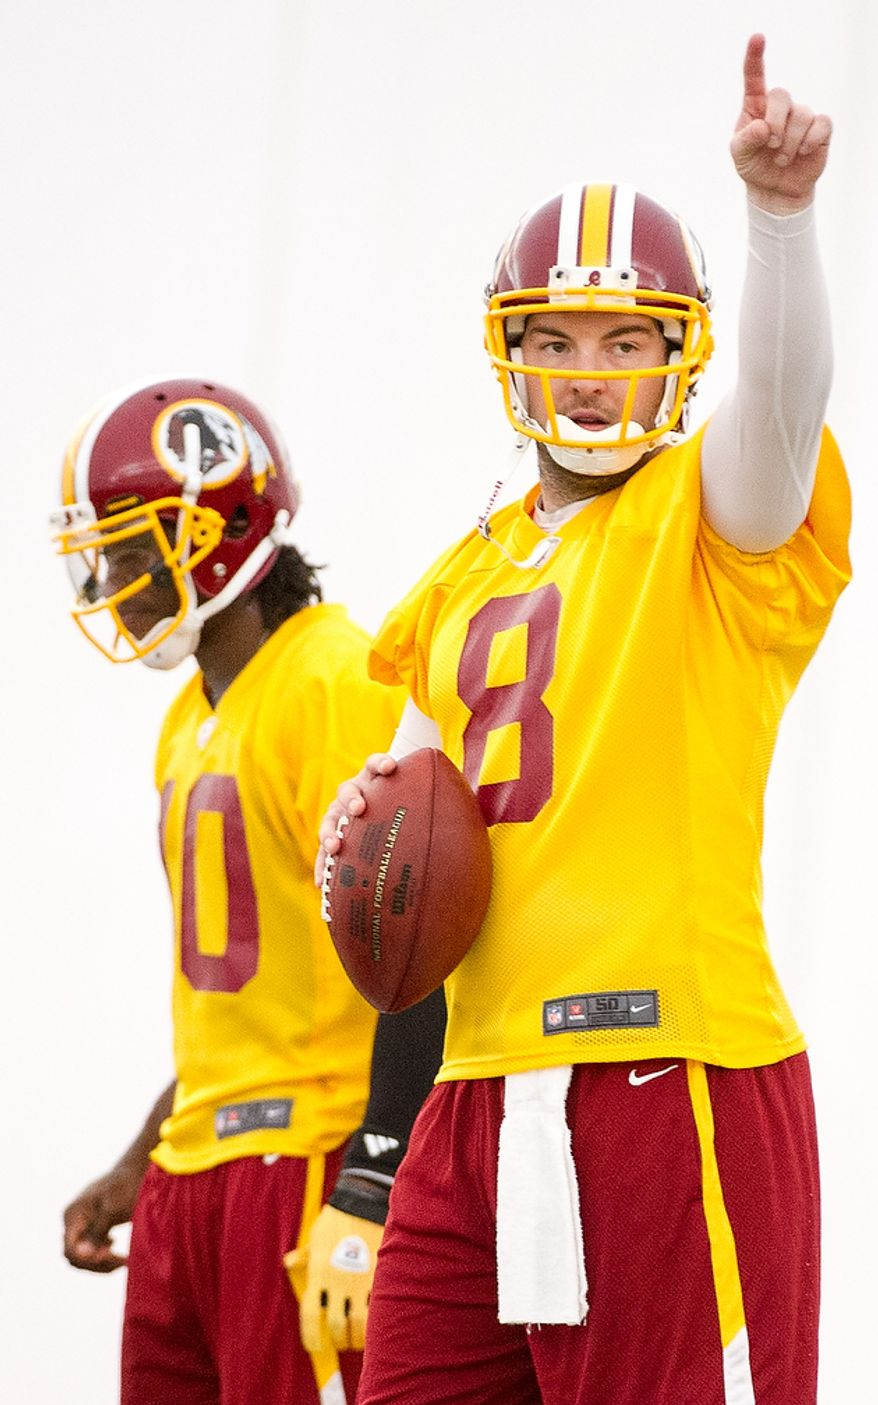 Washington Redskins quarterbacks Rex Grossman (8), right, and Robert Griffin III (10), left, take snaps together on the first day of organized team activity at Redskins Park, Ashburn, Va., Monday, May 21, 2012. (Andrew Harnik/The Washington Times)